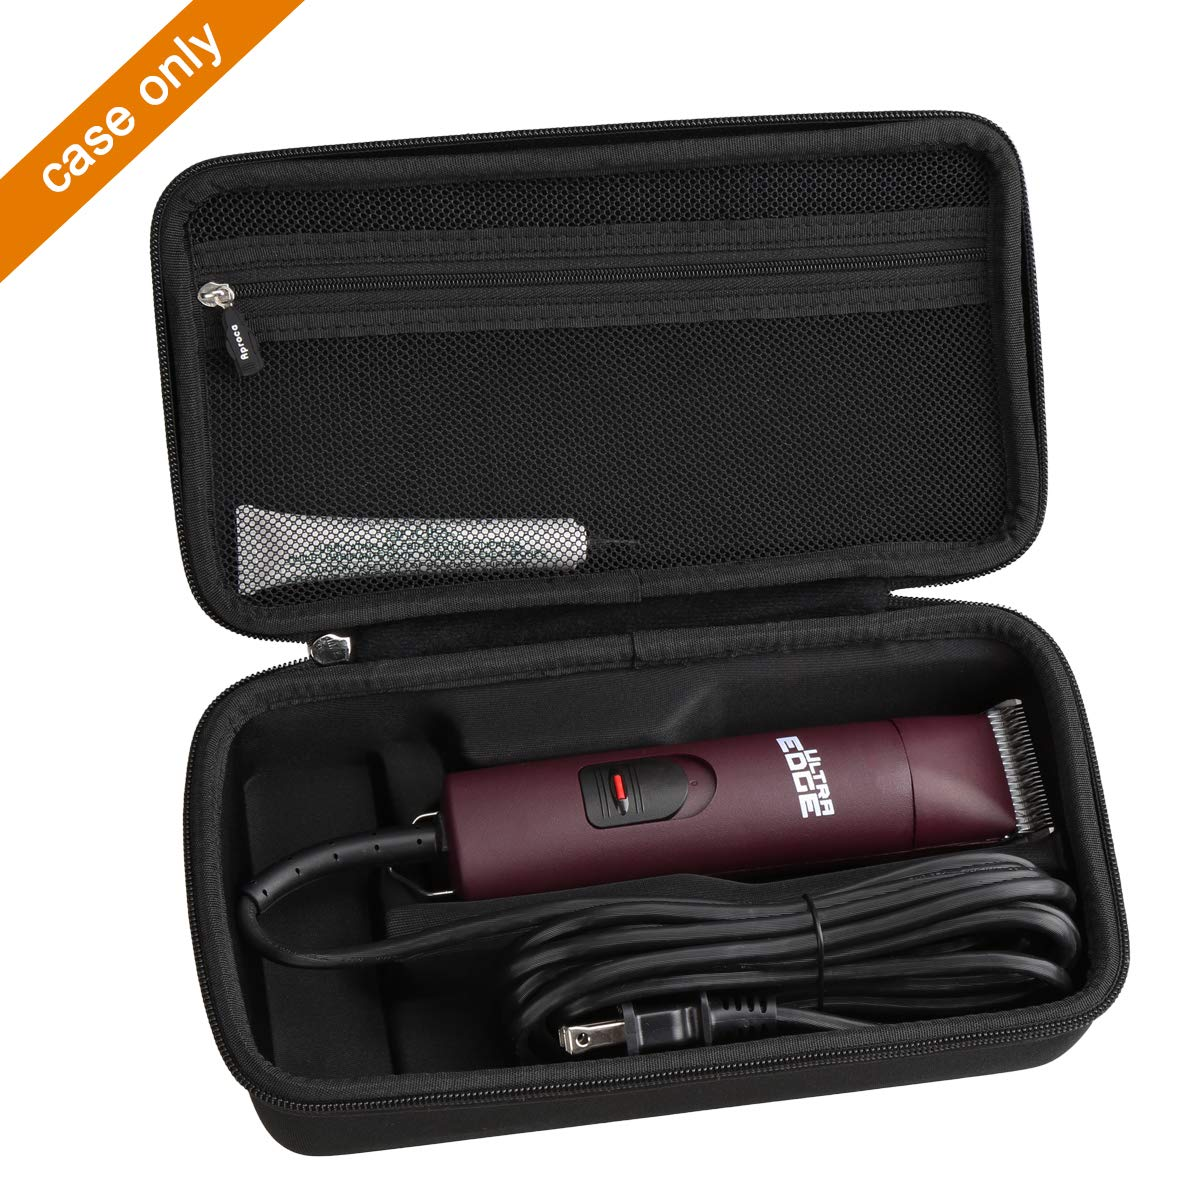 Aproca Hard Travel Case Compatible Andis UltraEdge Super 2-Speed Detachable Blade Clipper Professional Animal Dog Grooming